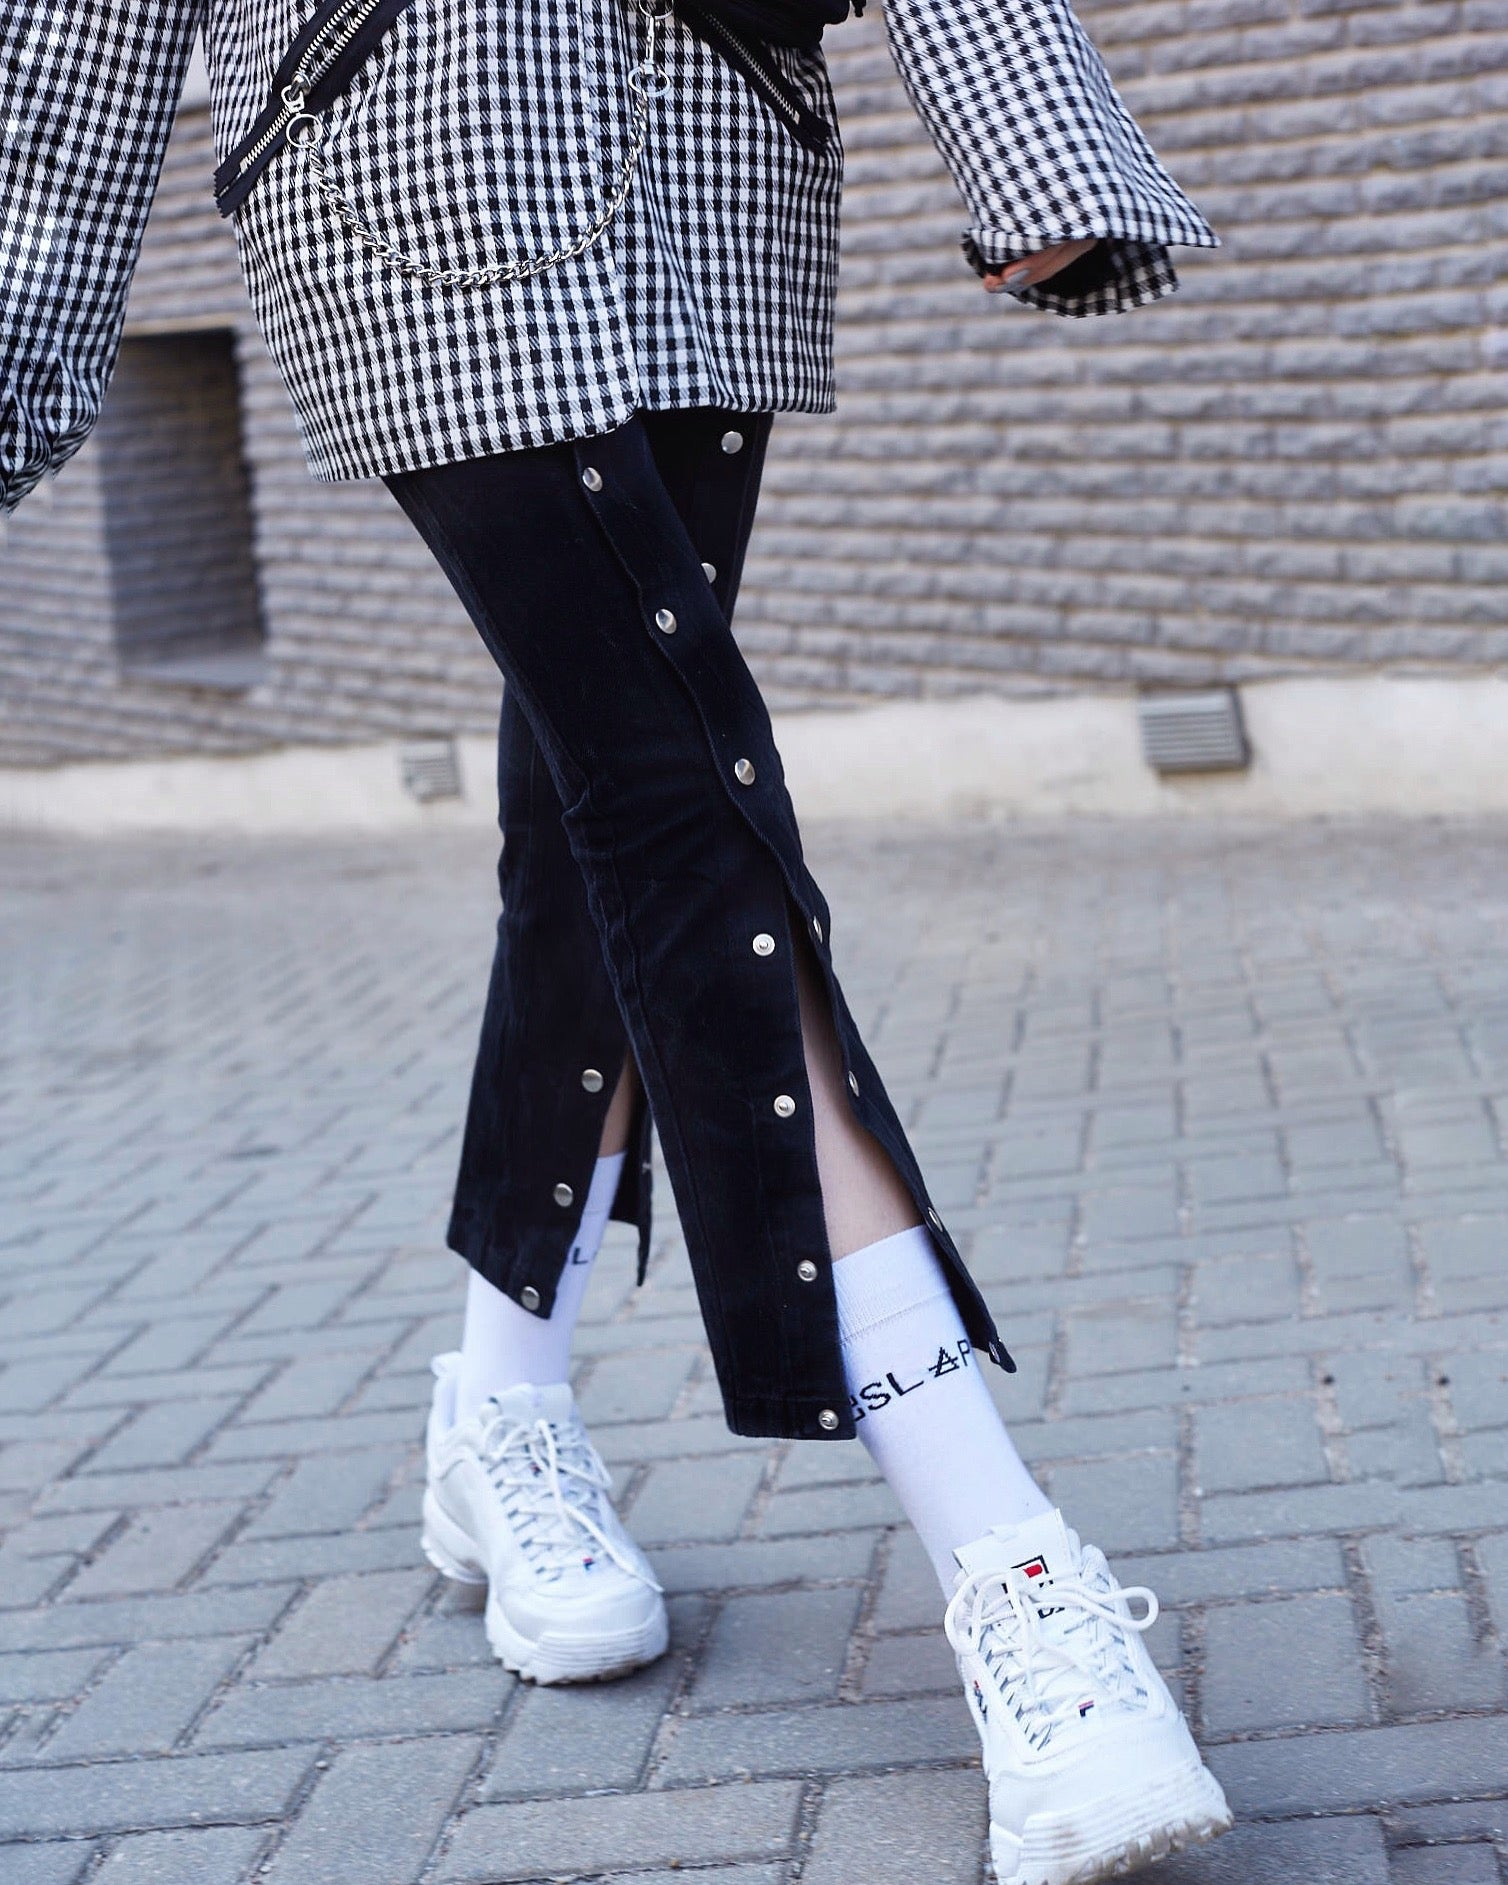 Le SLAP fashion, fashion trends, black denim, denim trends, autumn trends, snap buttons